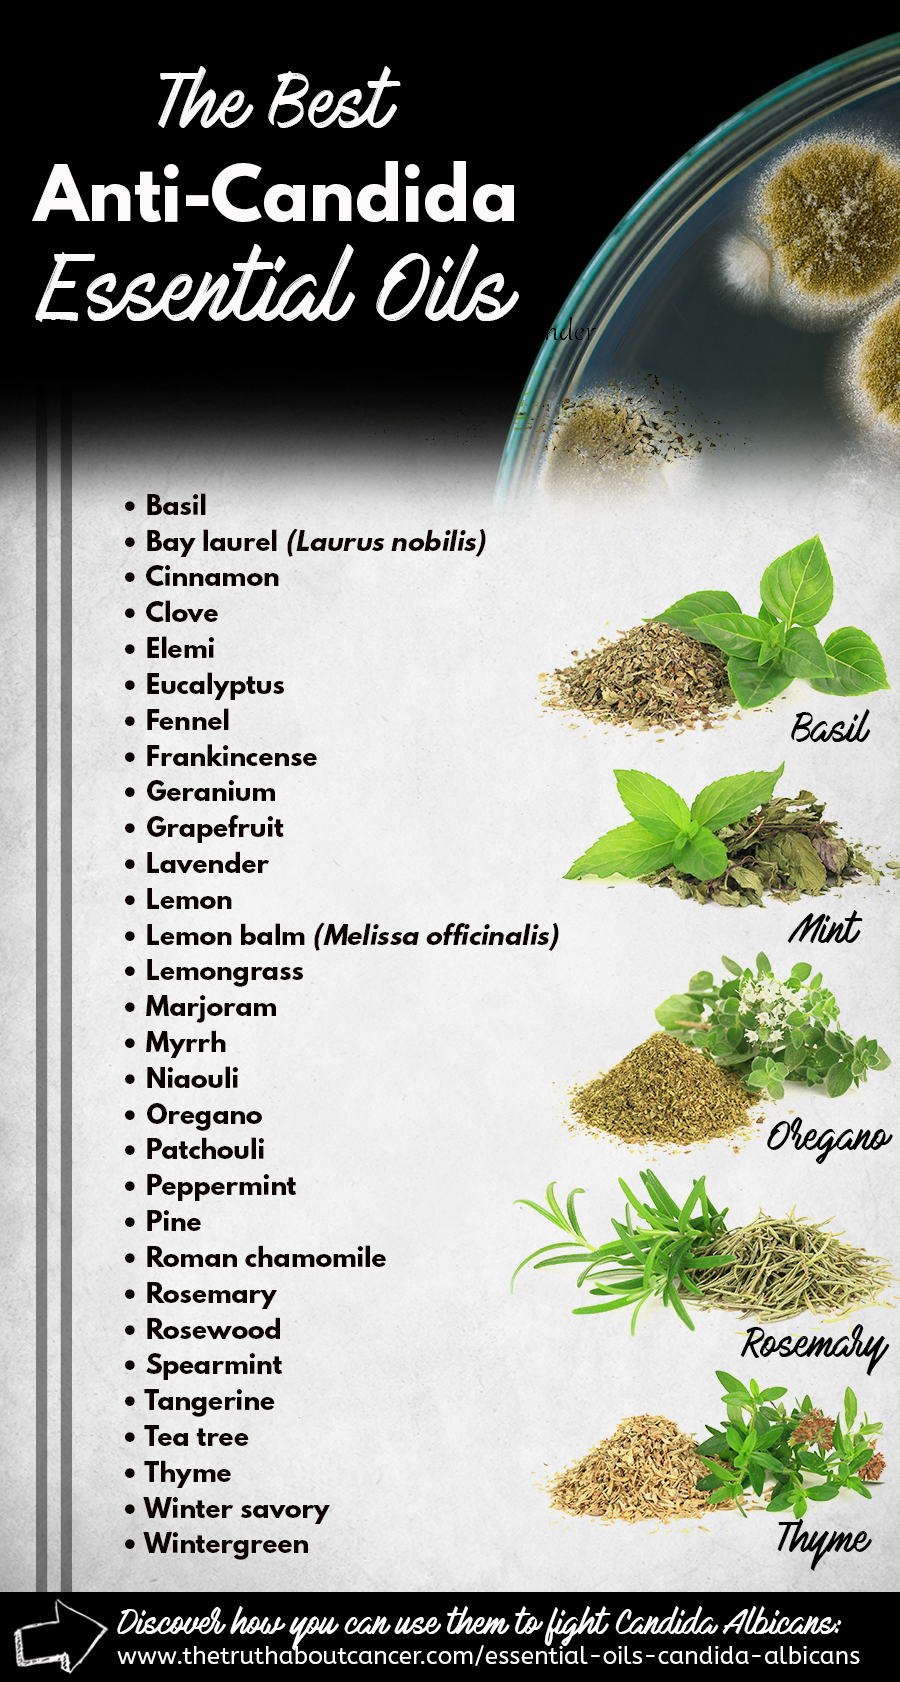 Anti-candida-essential-oils-list